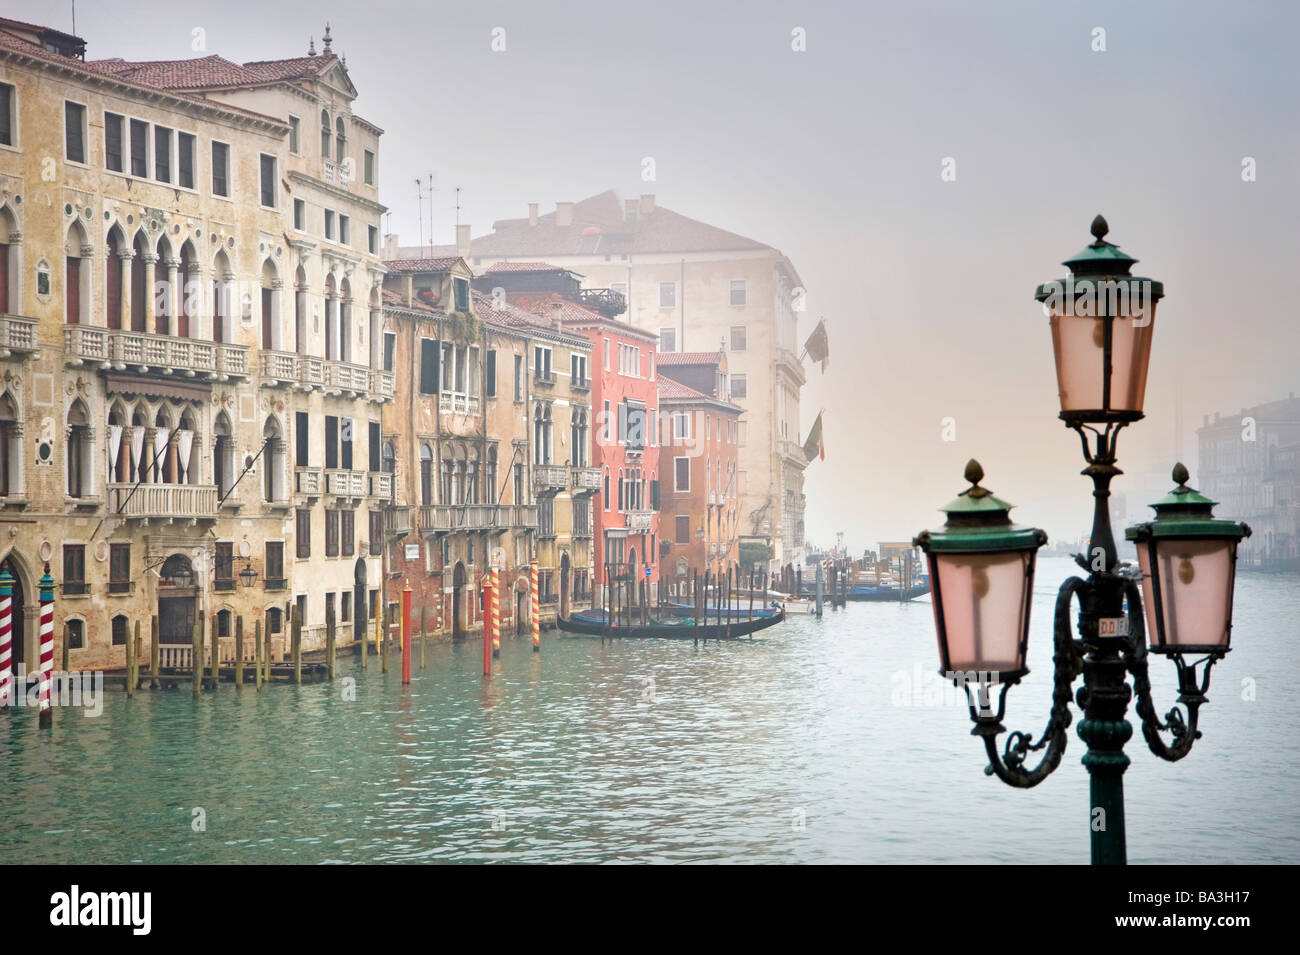 View of Canal Grande. Venice, Italy. - Stock Image